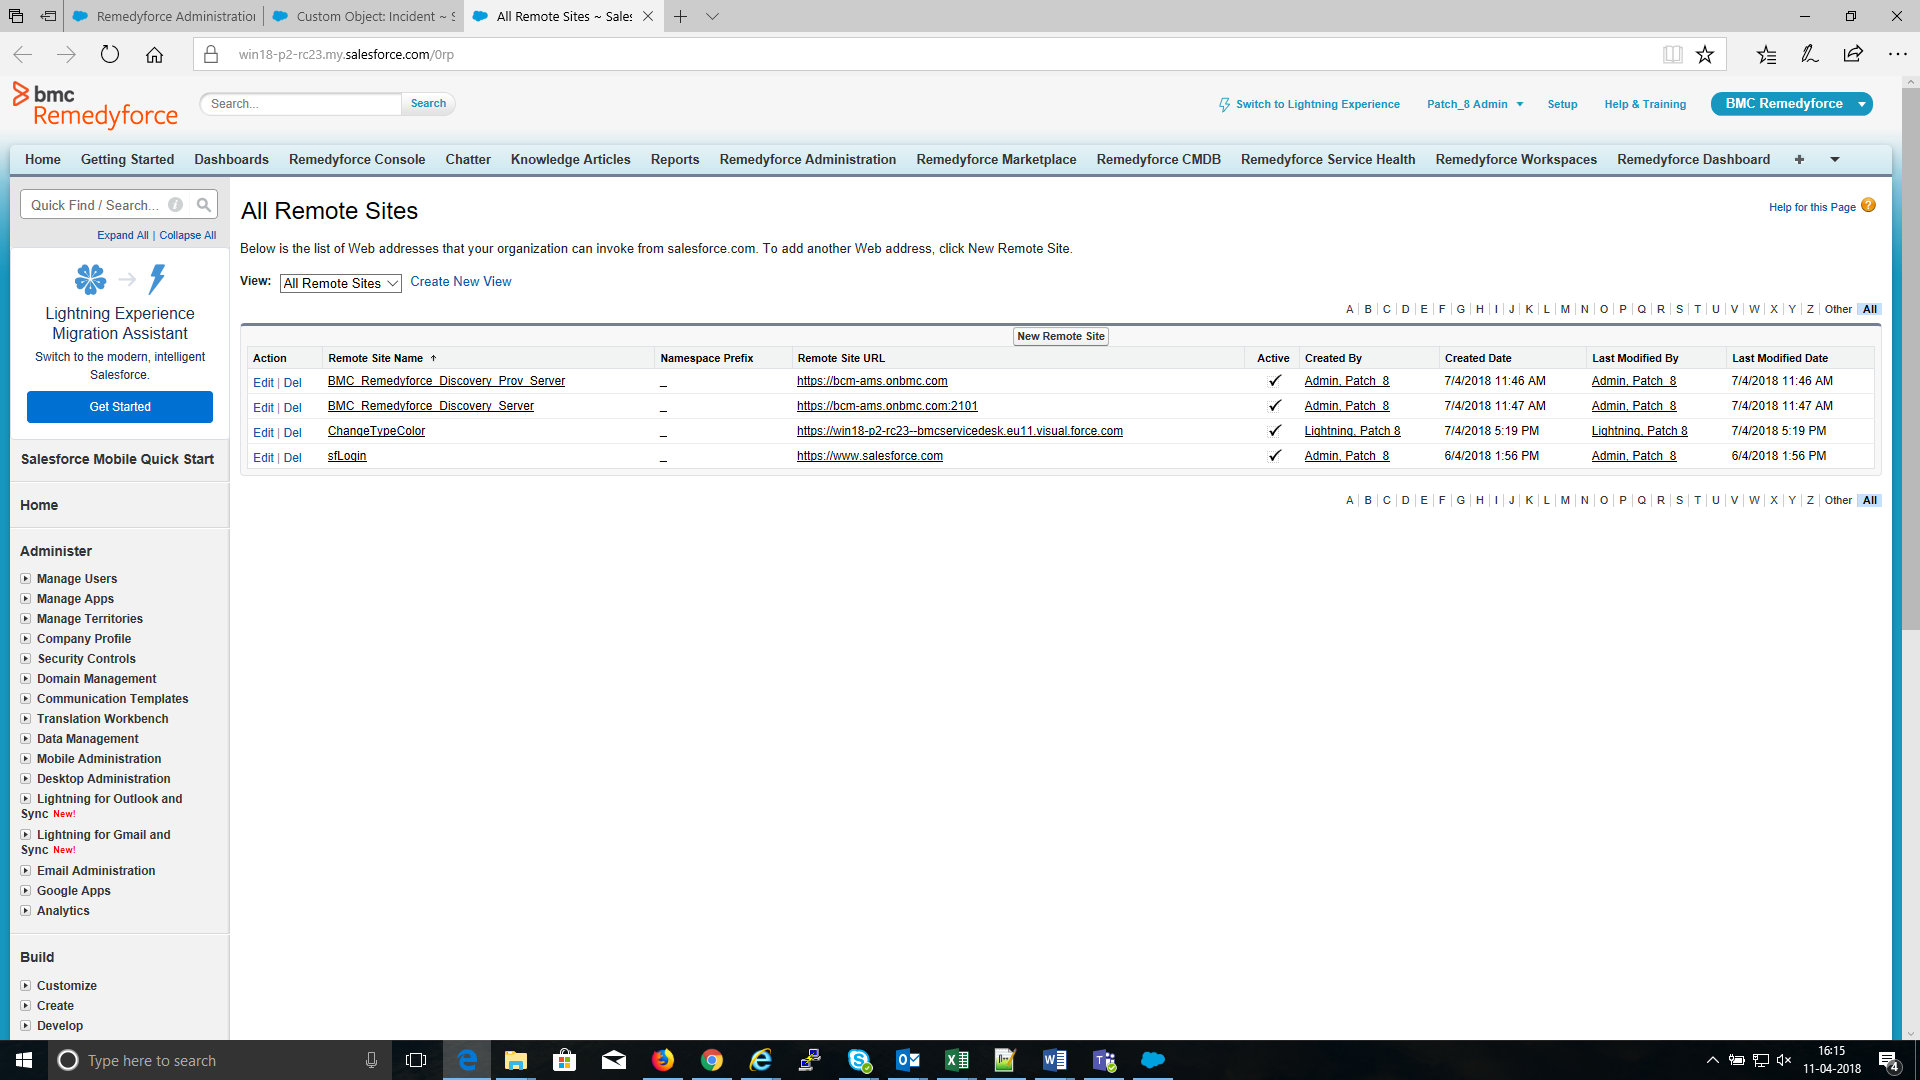 Enabling and configuring agentless discovery - Documentation for BMC